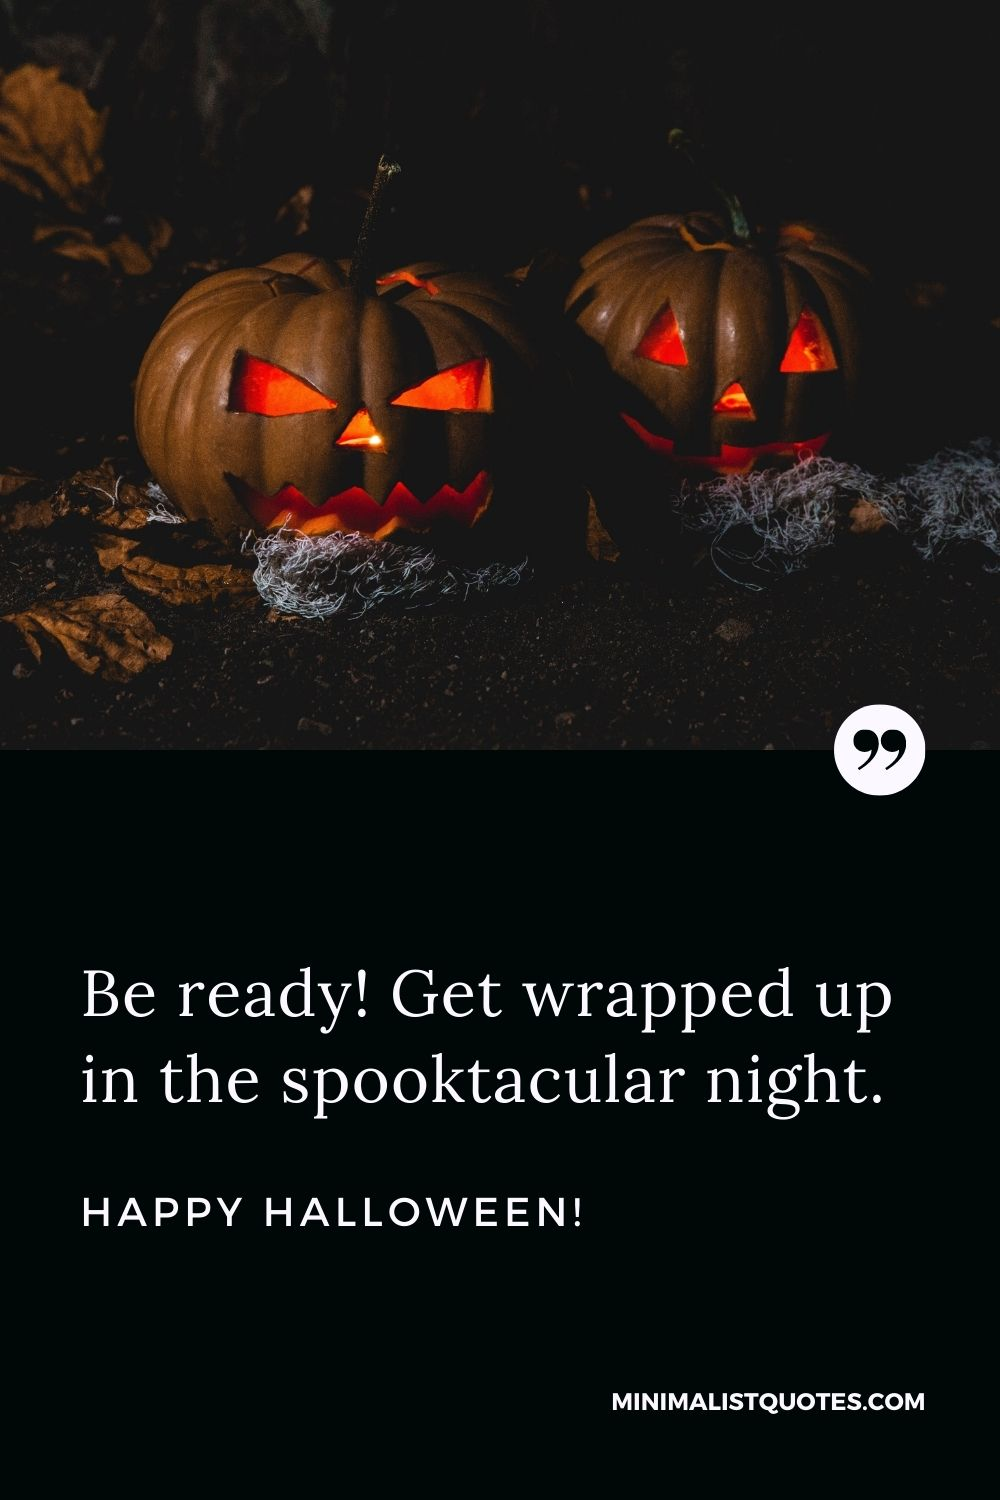 Happy Halloween Wishes - Be ready! Get wrapped up in the spooktacular night.